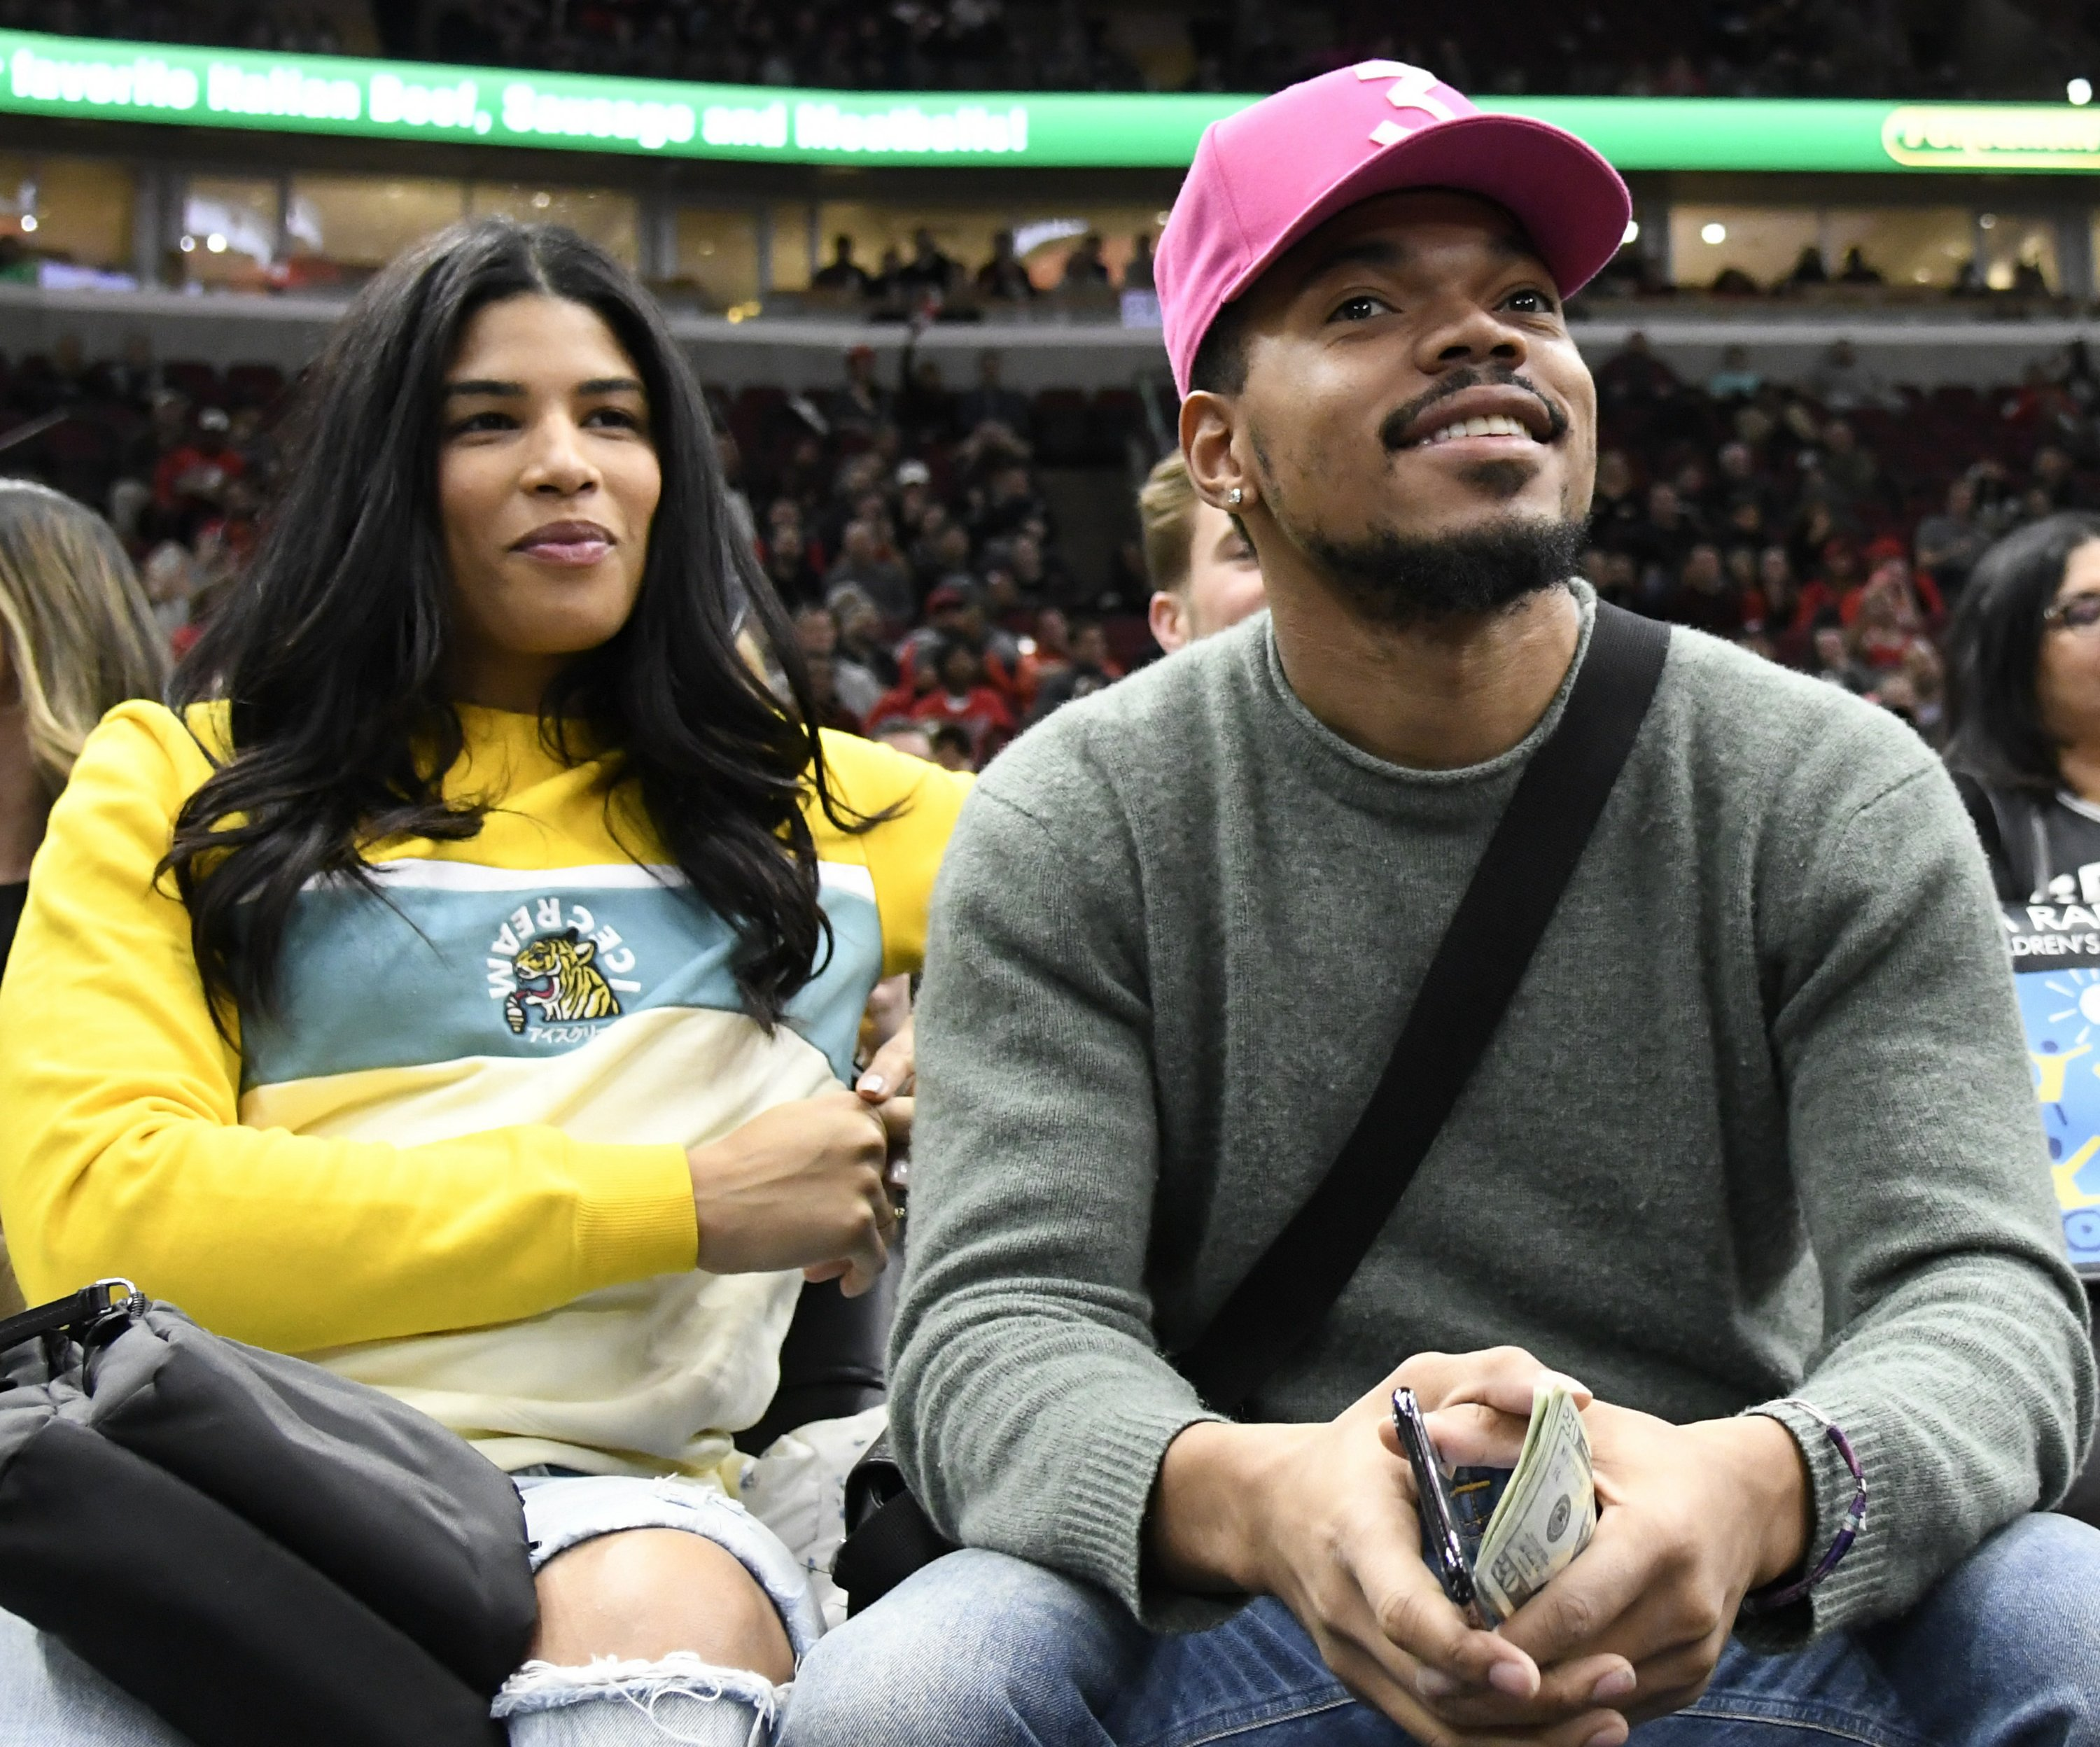 Chance the Rapper marries longtime girlfriend